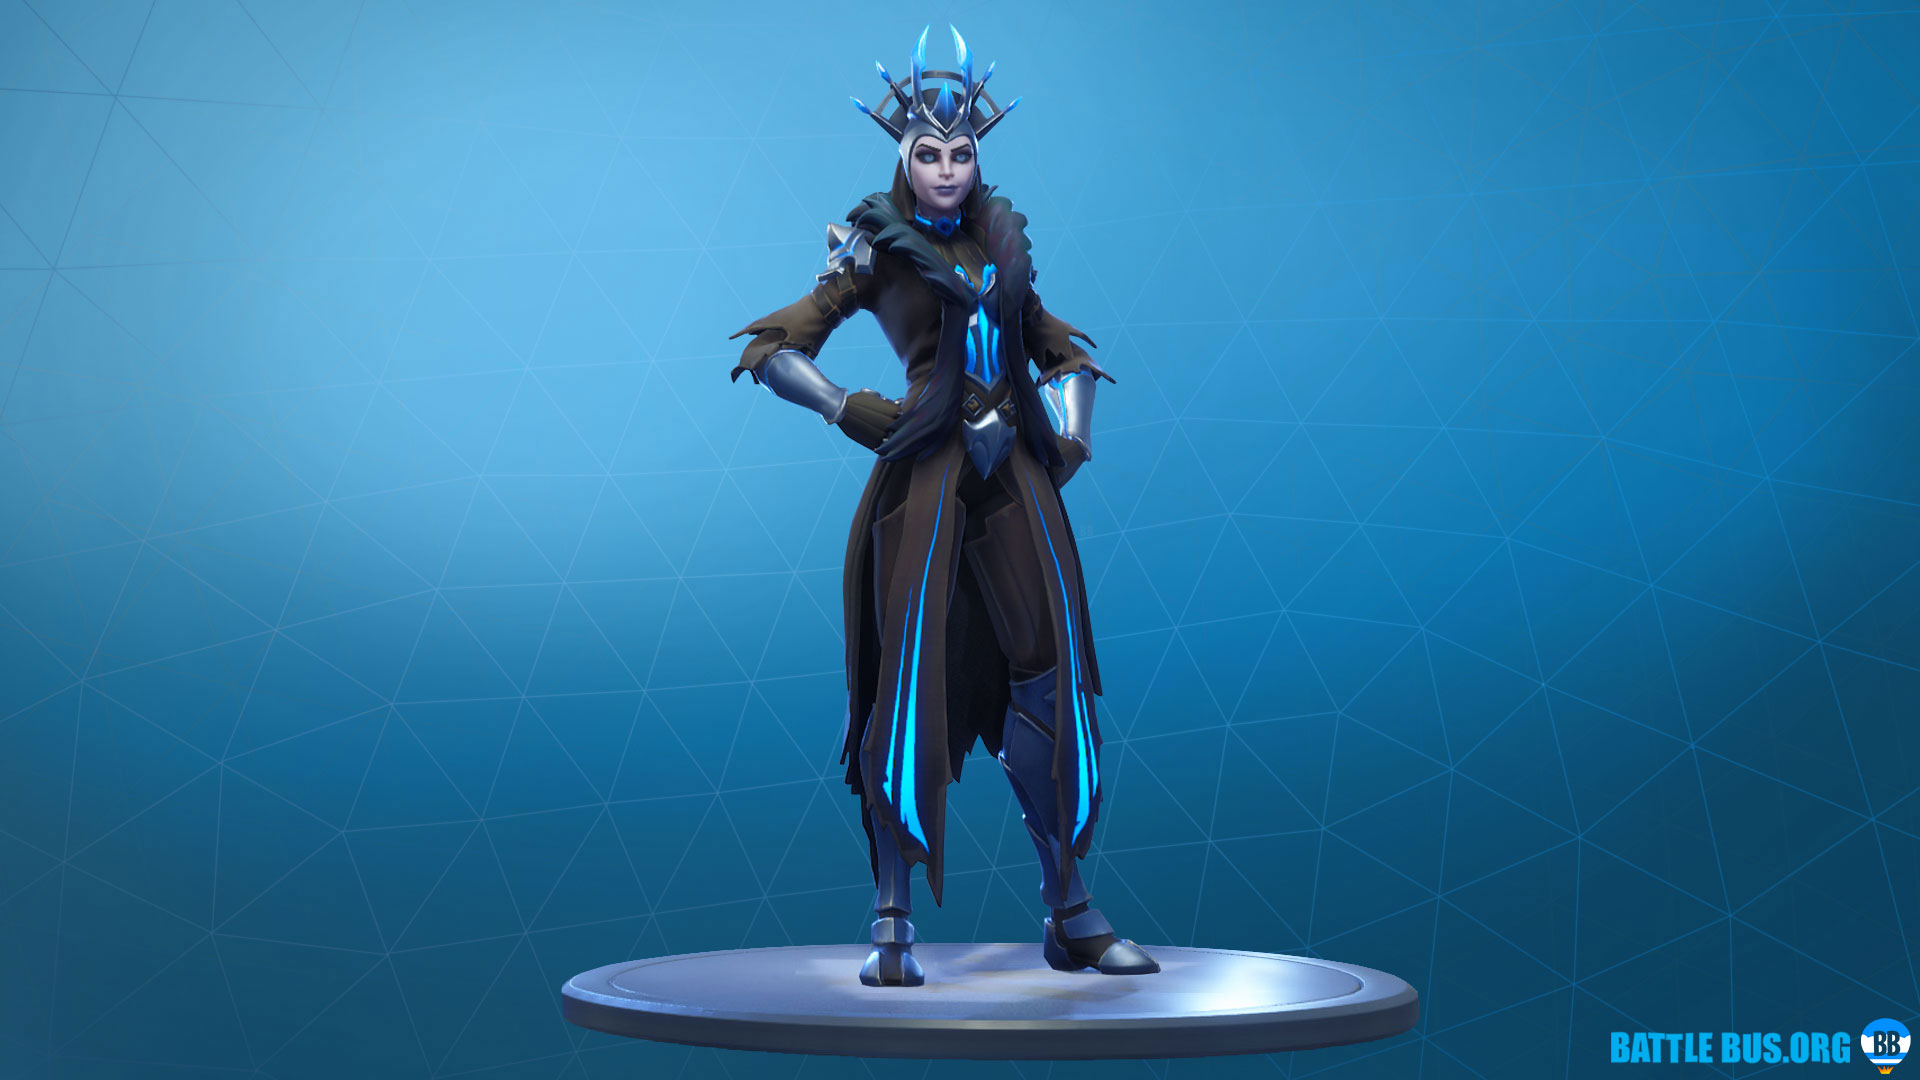 Ice Queen Fortnite Pickaxe Fortnite Online Games